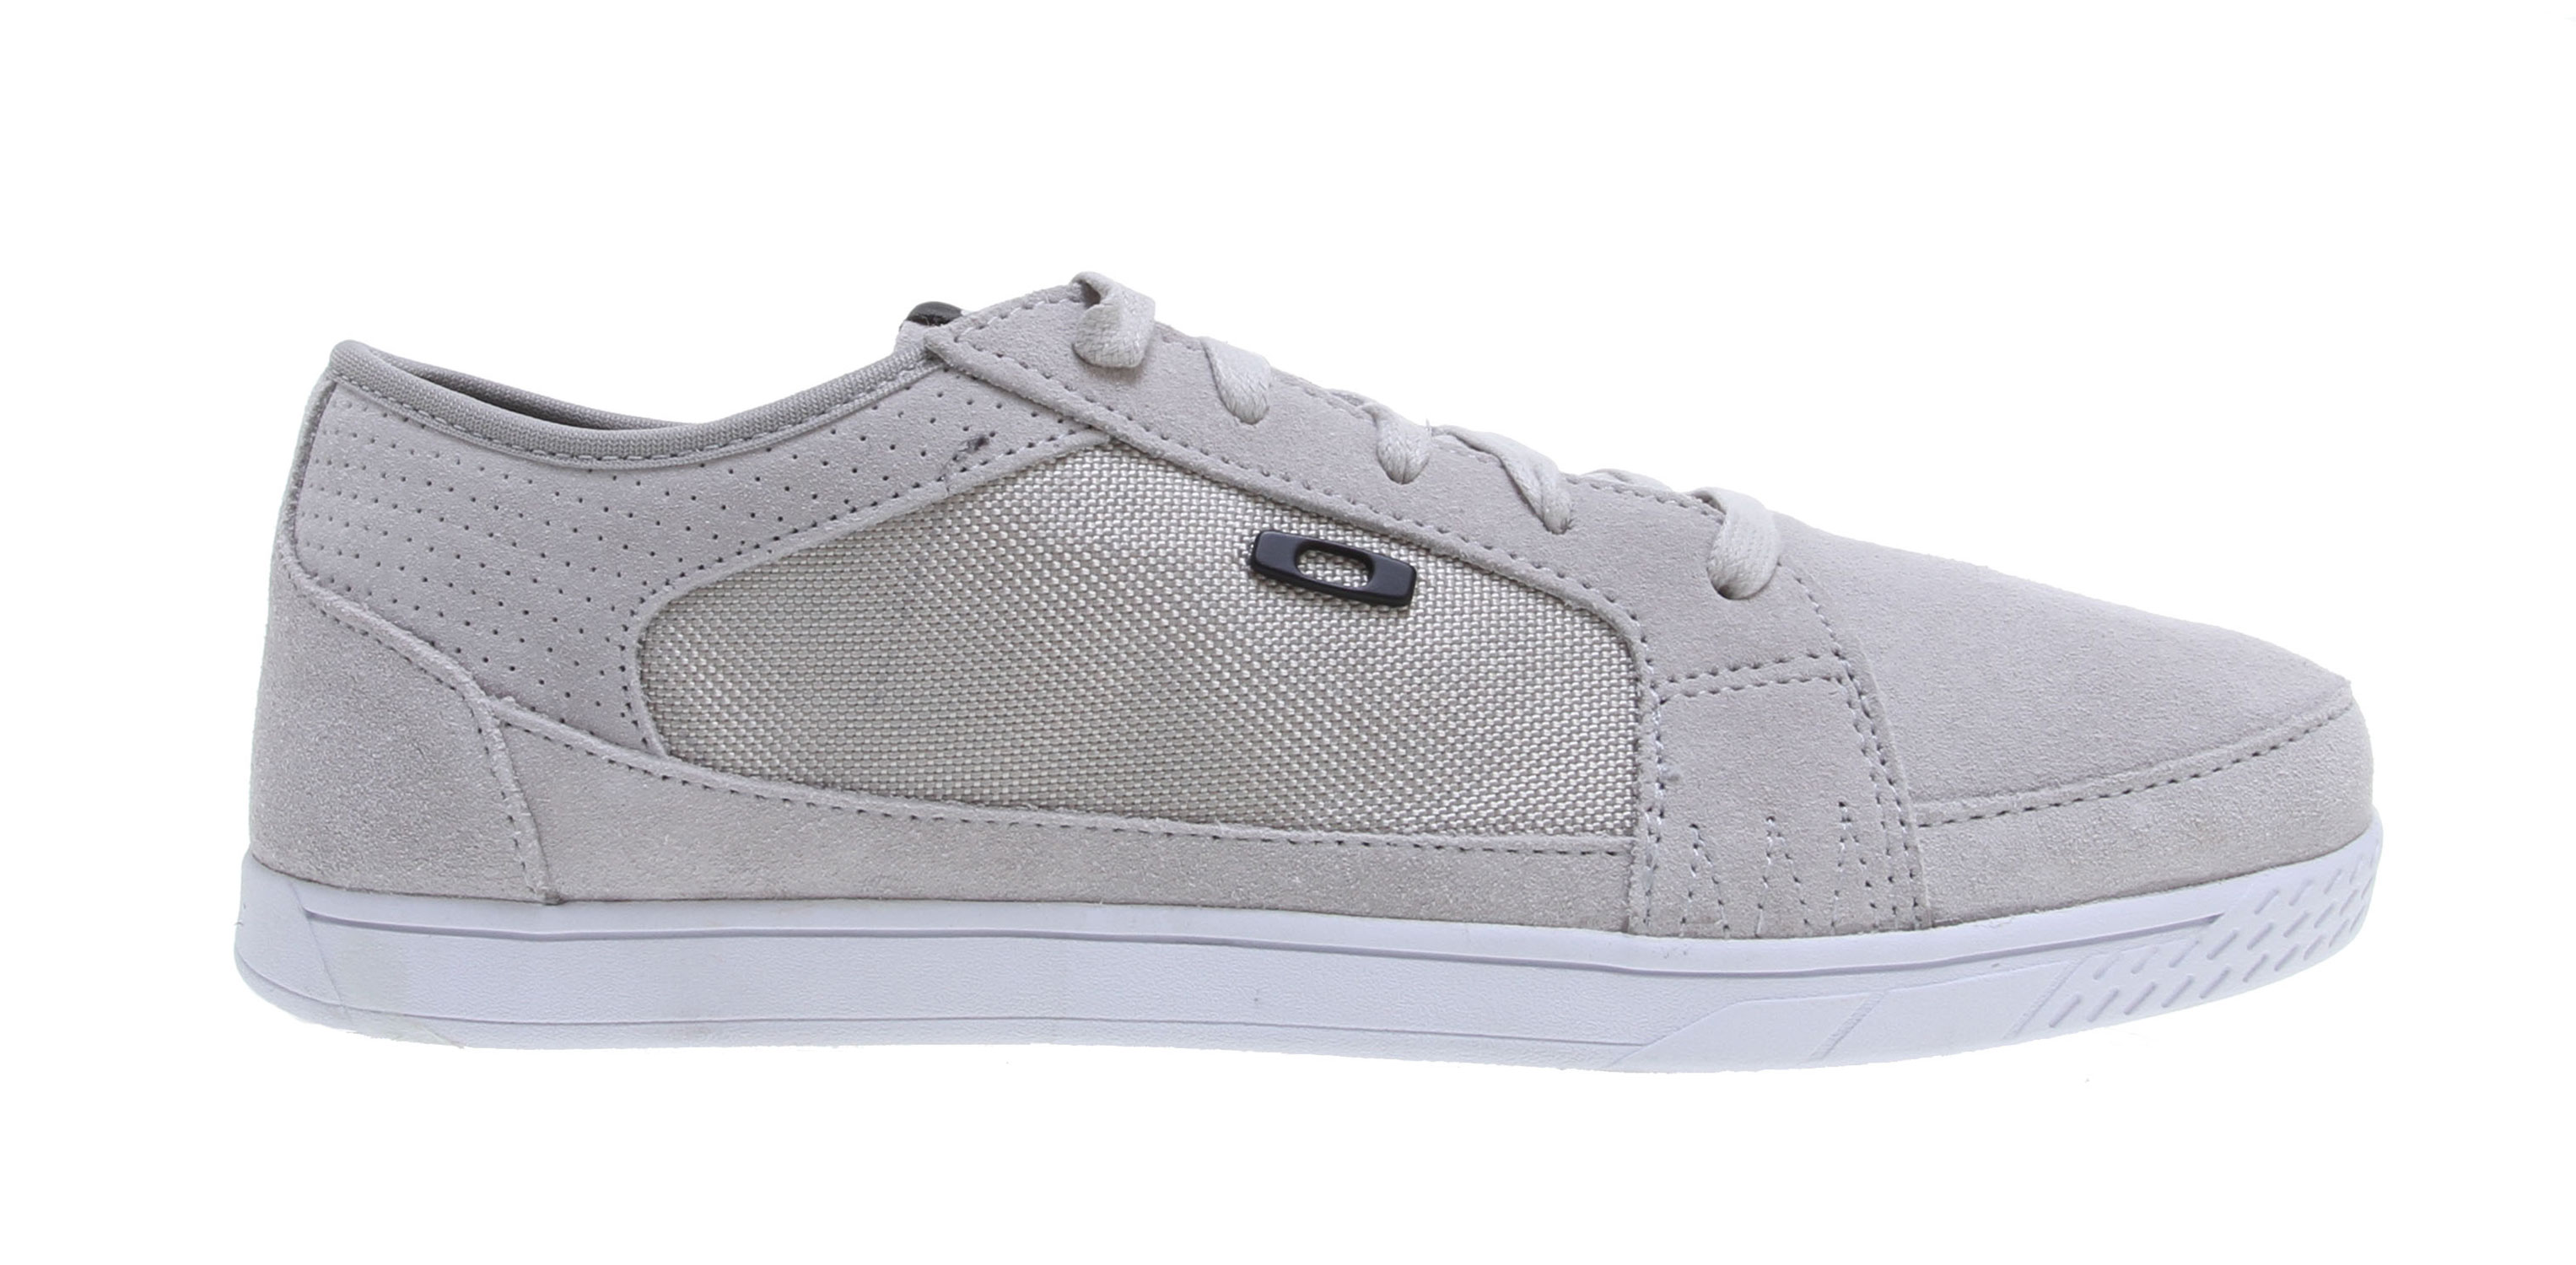 Key Features of the Oakley Westcliff Shoes: Suede and synthetic canvas EVA midsole with Comfortzorb cushioning layer Ortholite performance dual-density insole with moisture transport High traction rubber outsole Icon accents - $46.95